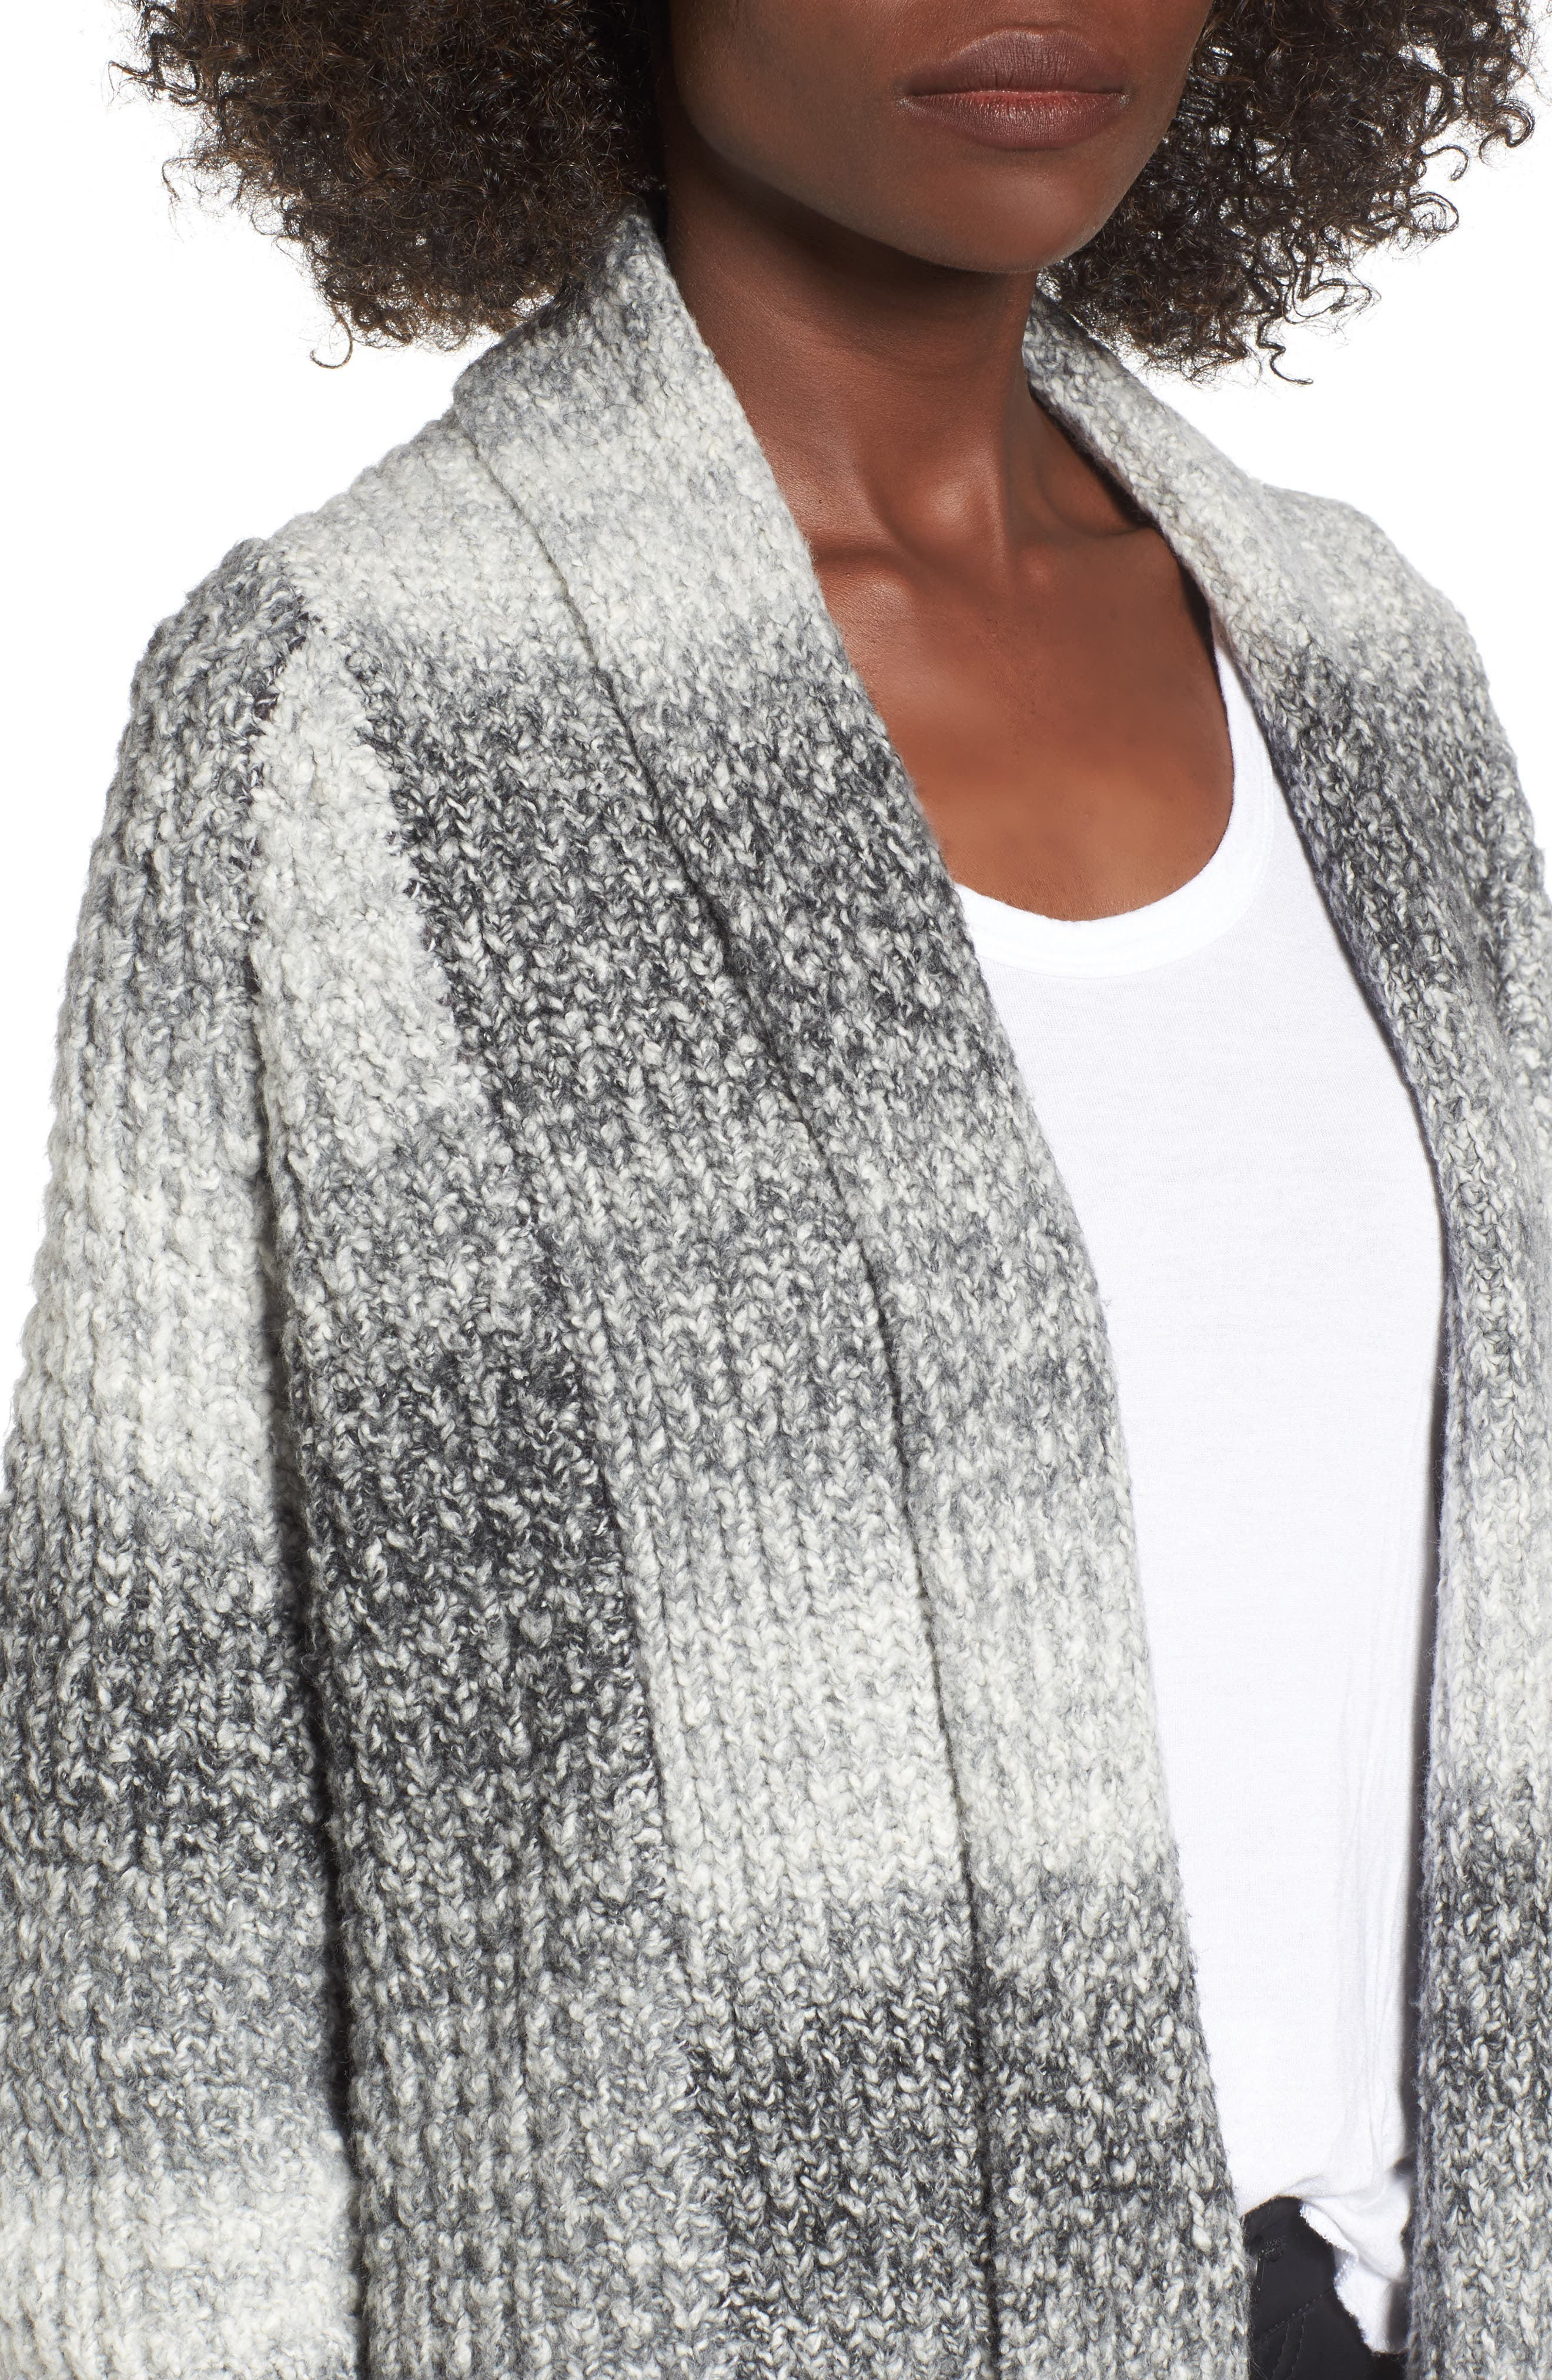 Ombré Cardigan,                             Alternate thumbnail 4, color,                             Grey Cloudy Ombre